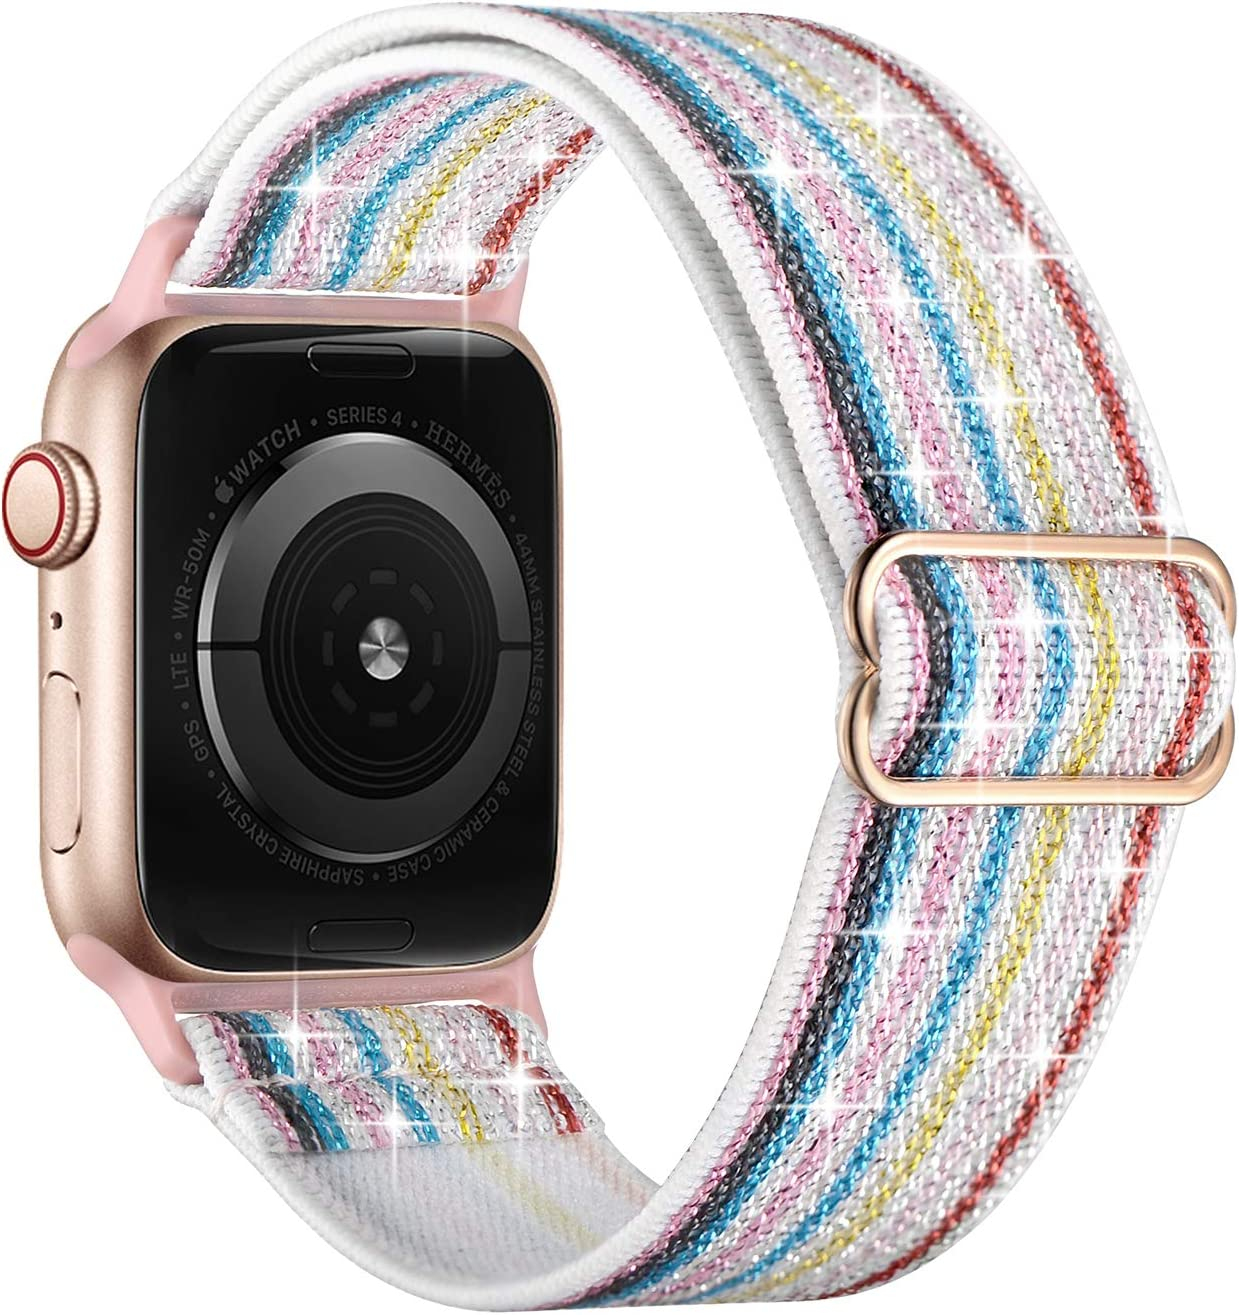 OXWALLEN Sparkly Stretchy Elastic Solo Loop Compatible with Apple Watch Bands 38mm 40mm, Adjustable Braided Sport Nylon Women Strap for iWatch SE Series 6/5/4/3/2/1,White Rainbow